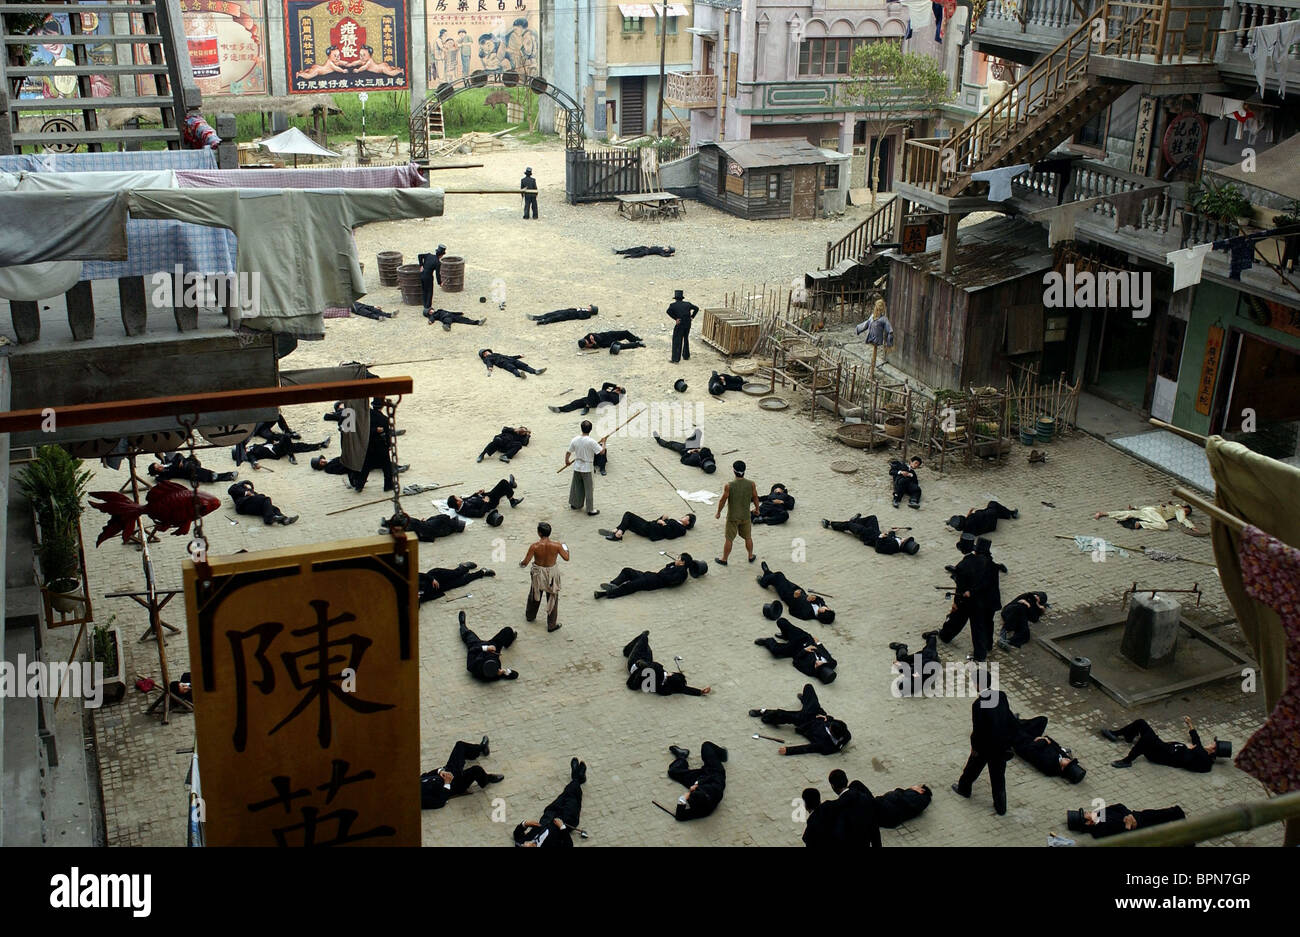 DEFEATED AXE CHAIN GANG KUNG FU HUSTLE (2004) - Stock Image